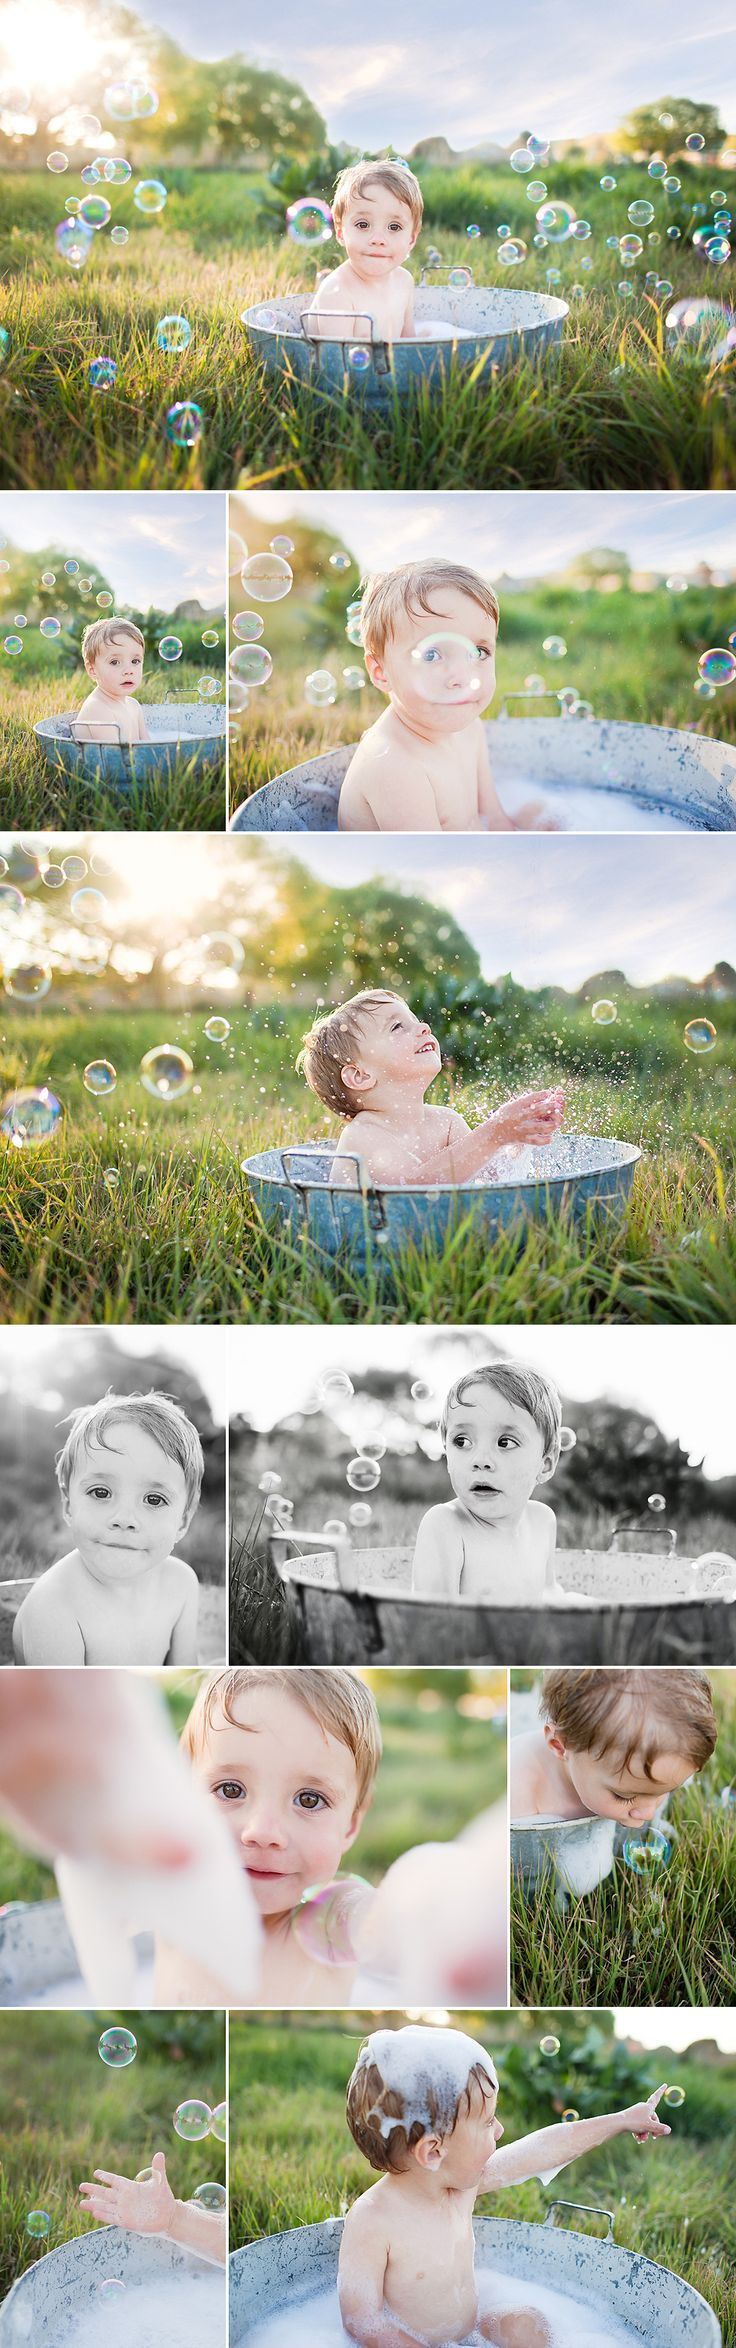 cute bubble bath photo shoot! #babypictures